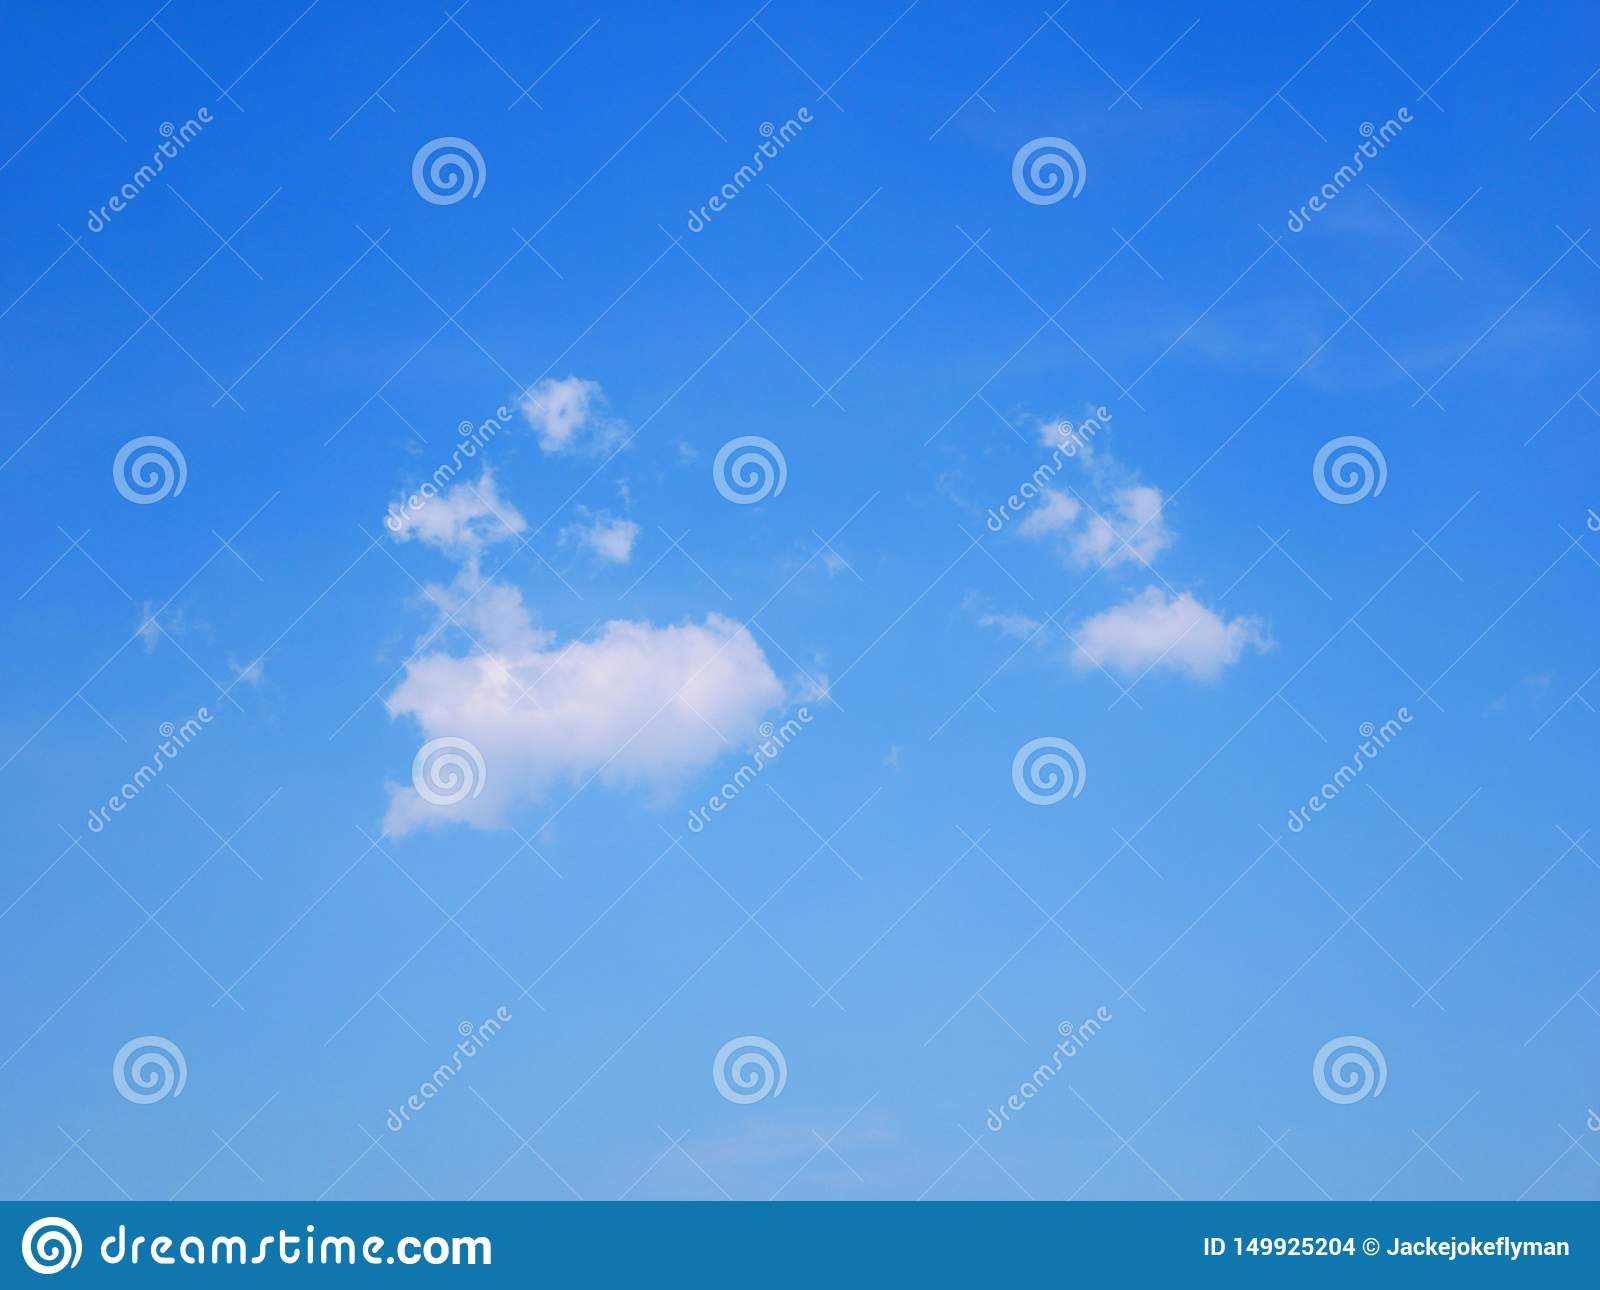 Only one cloud among the blue sky